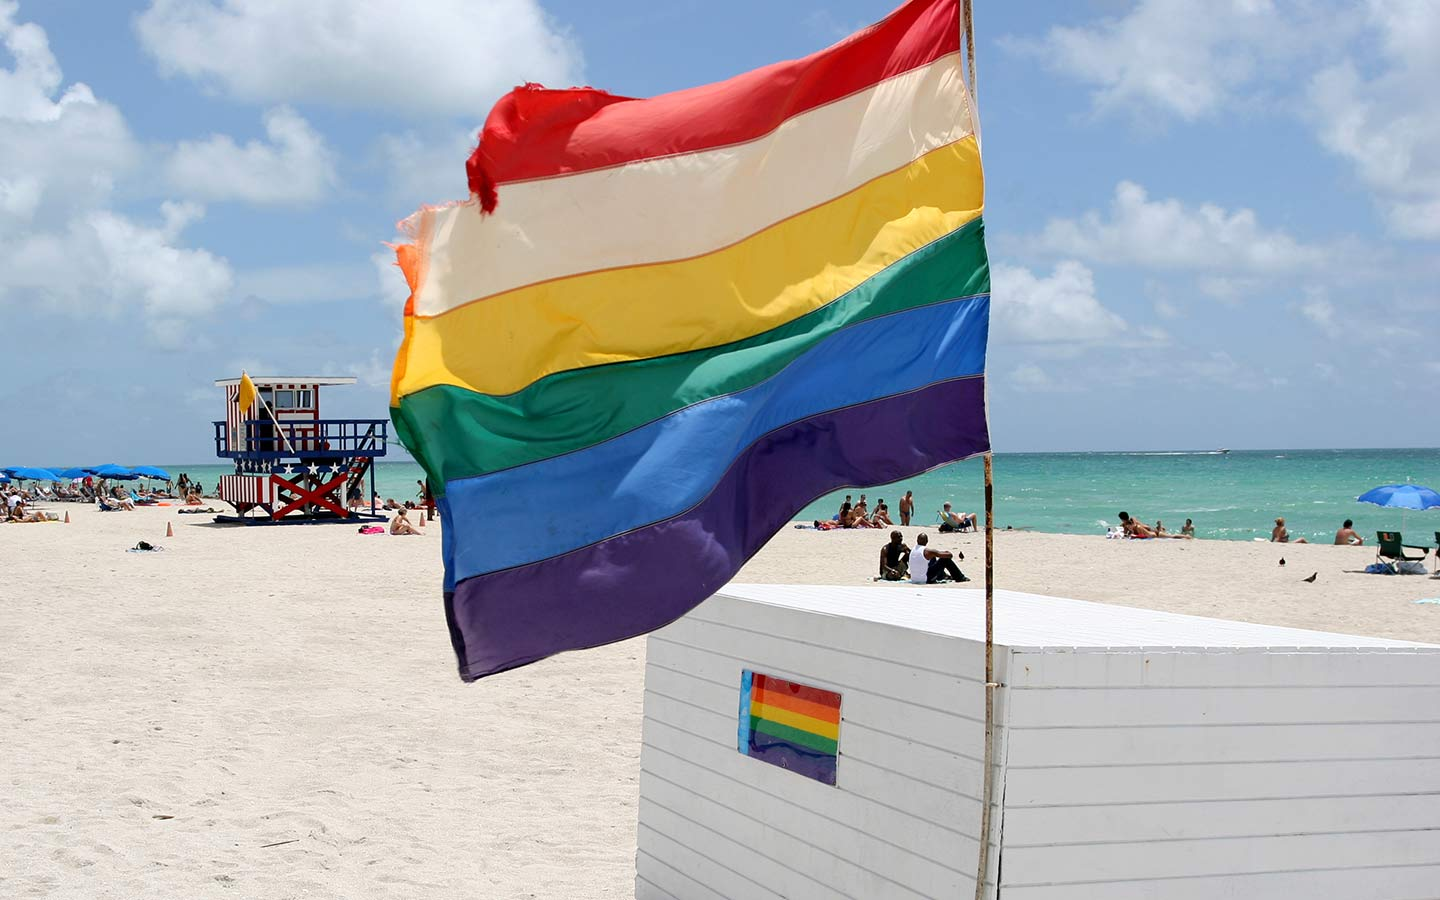 Miami Beach Welcomes and Celebrates the LGBTQ Community All Year Long with Specialty Events, Hotel Openings and Destination Experiences